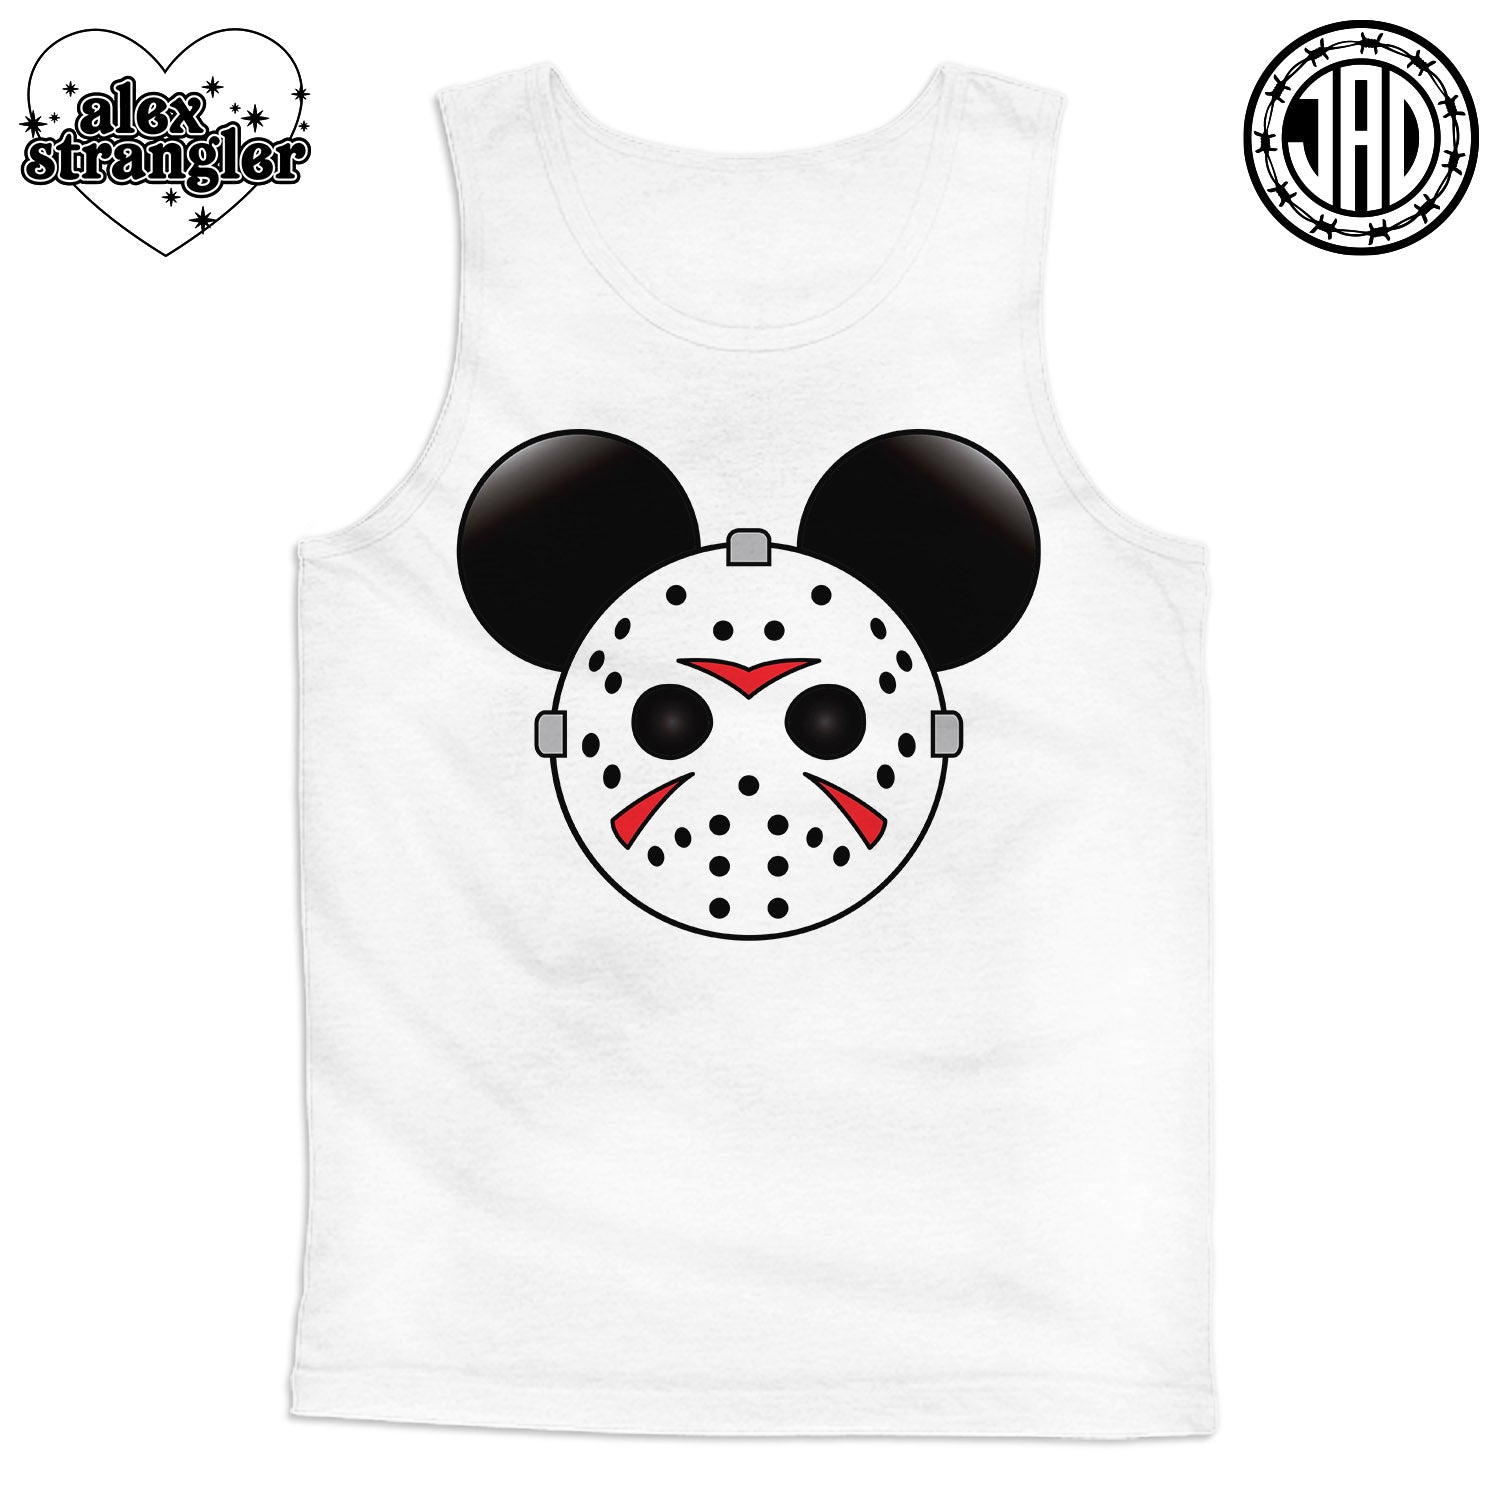 Mr. Murder Mouse - Men's (Unisex) Tank